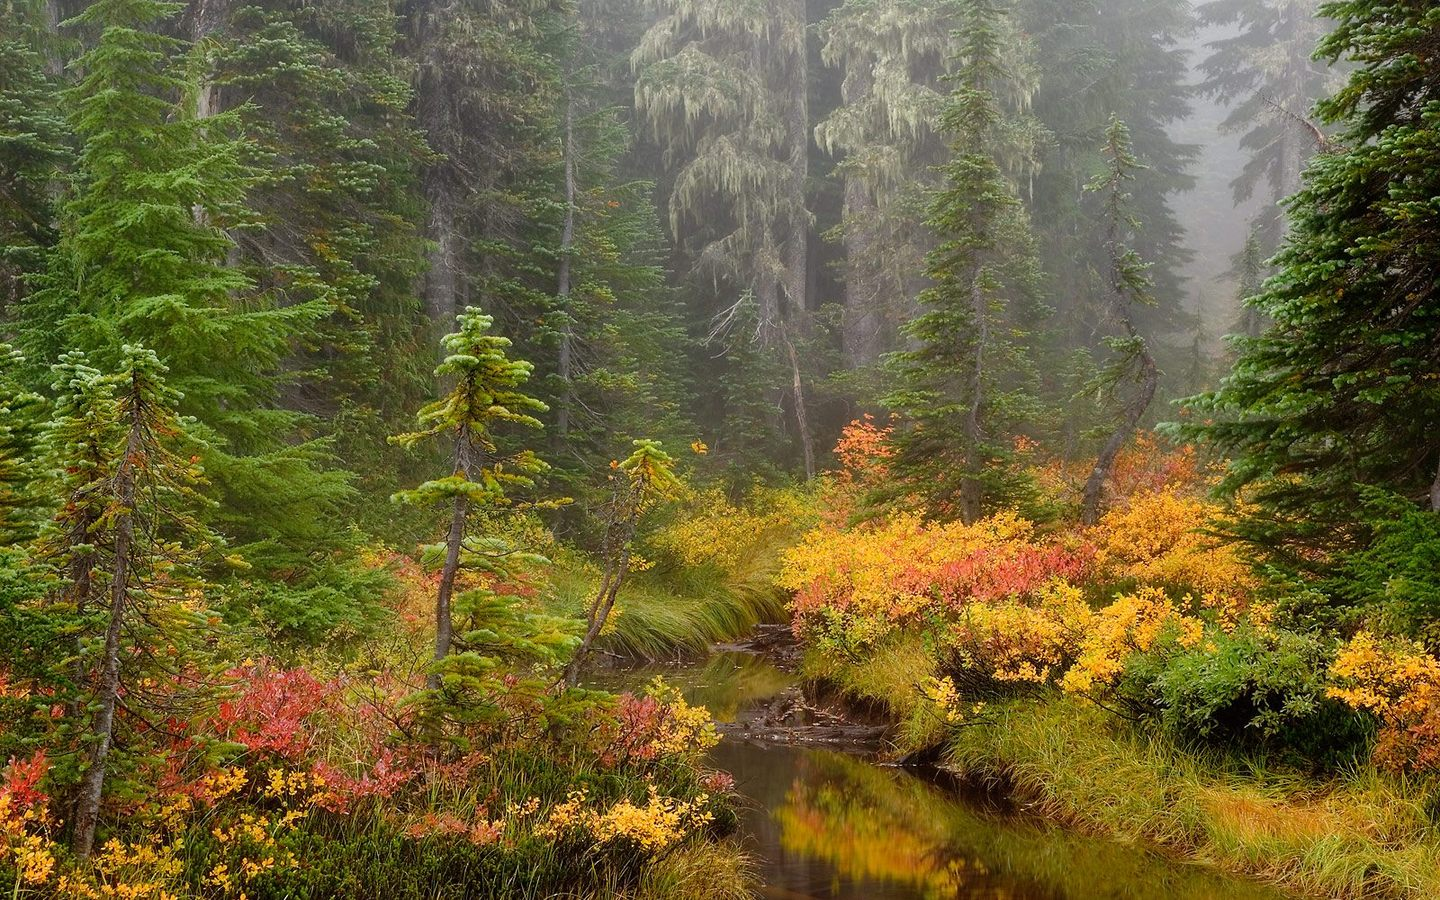 HQ Brook Mount Rainier National Park Wallpaper   HQ 1440x900